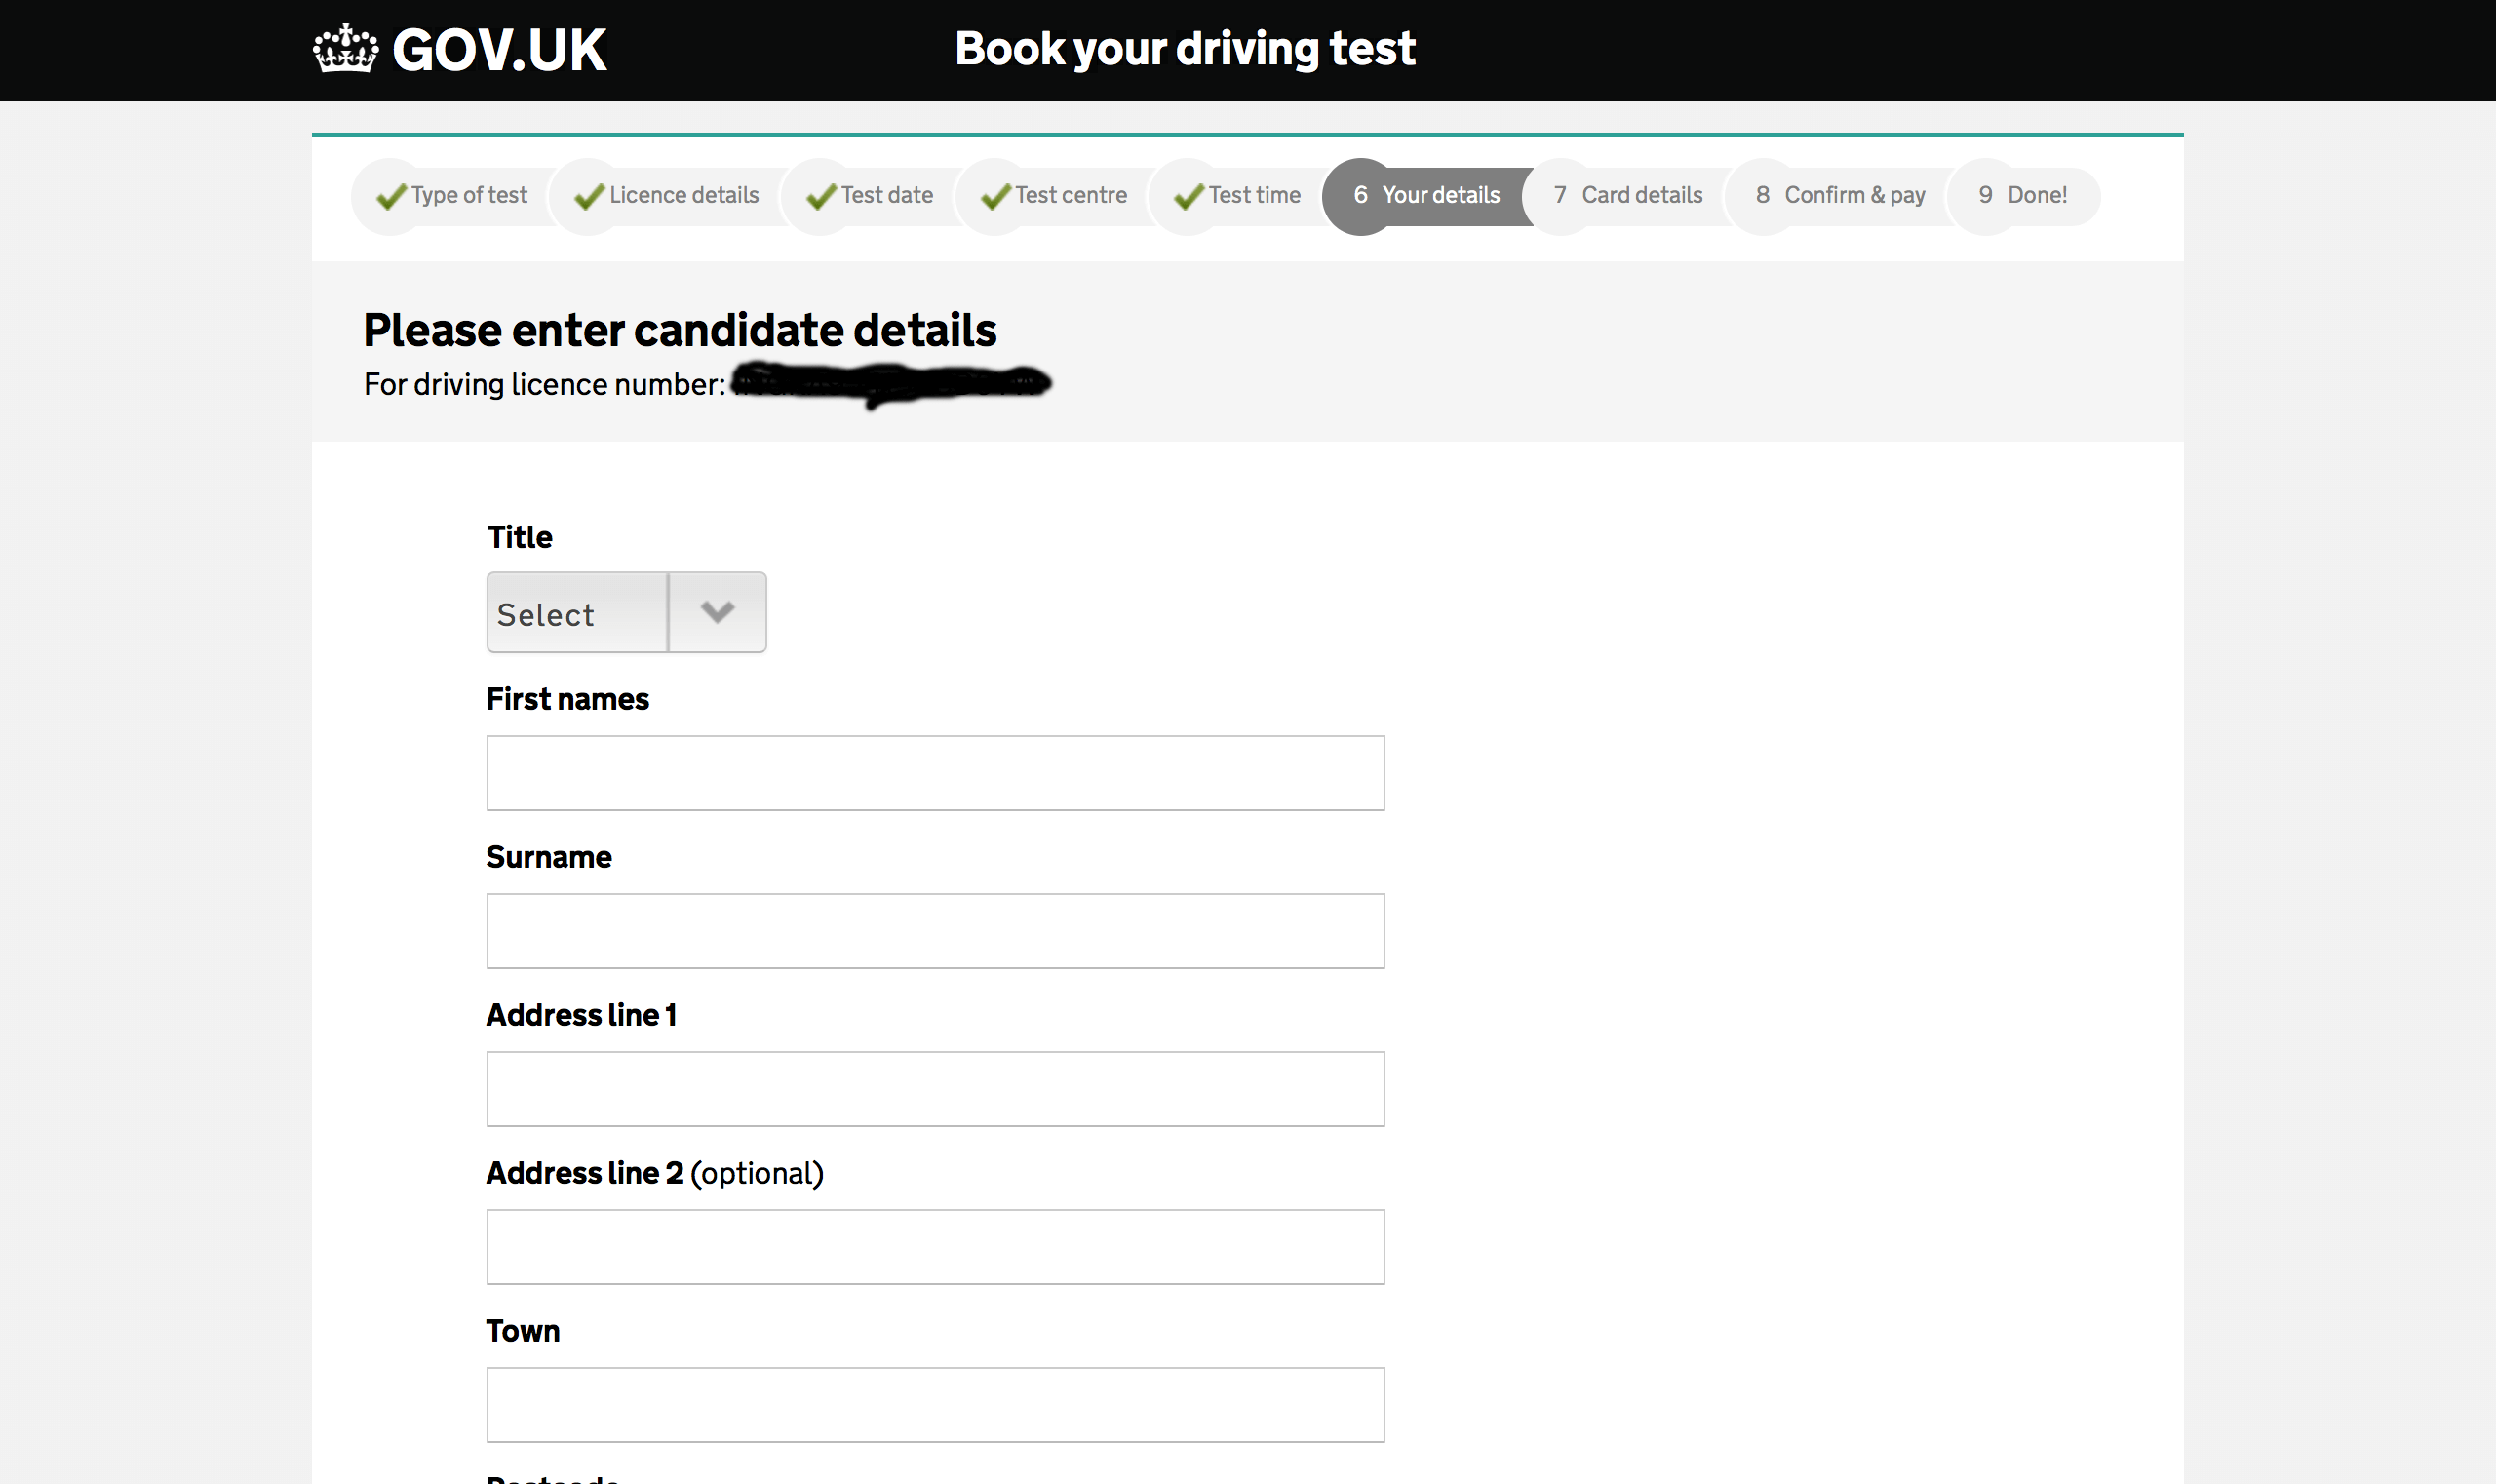 fill in your licence details